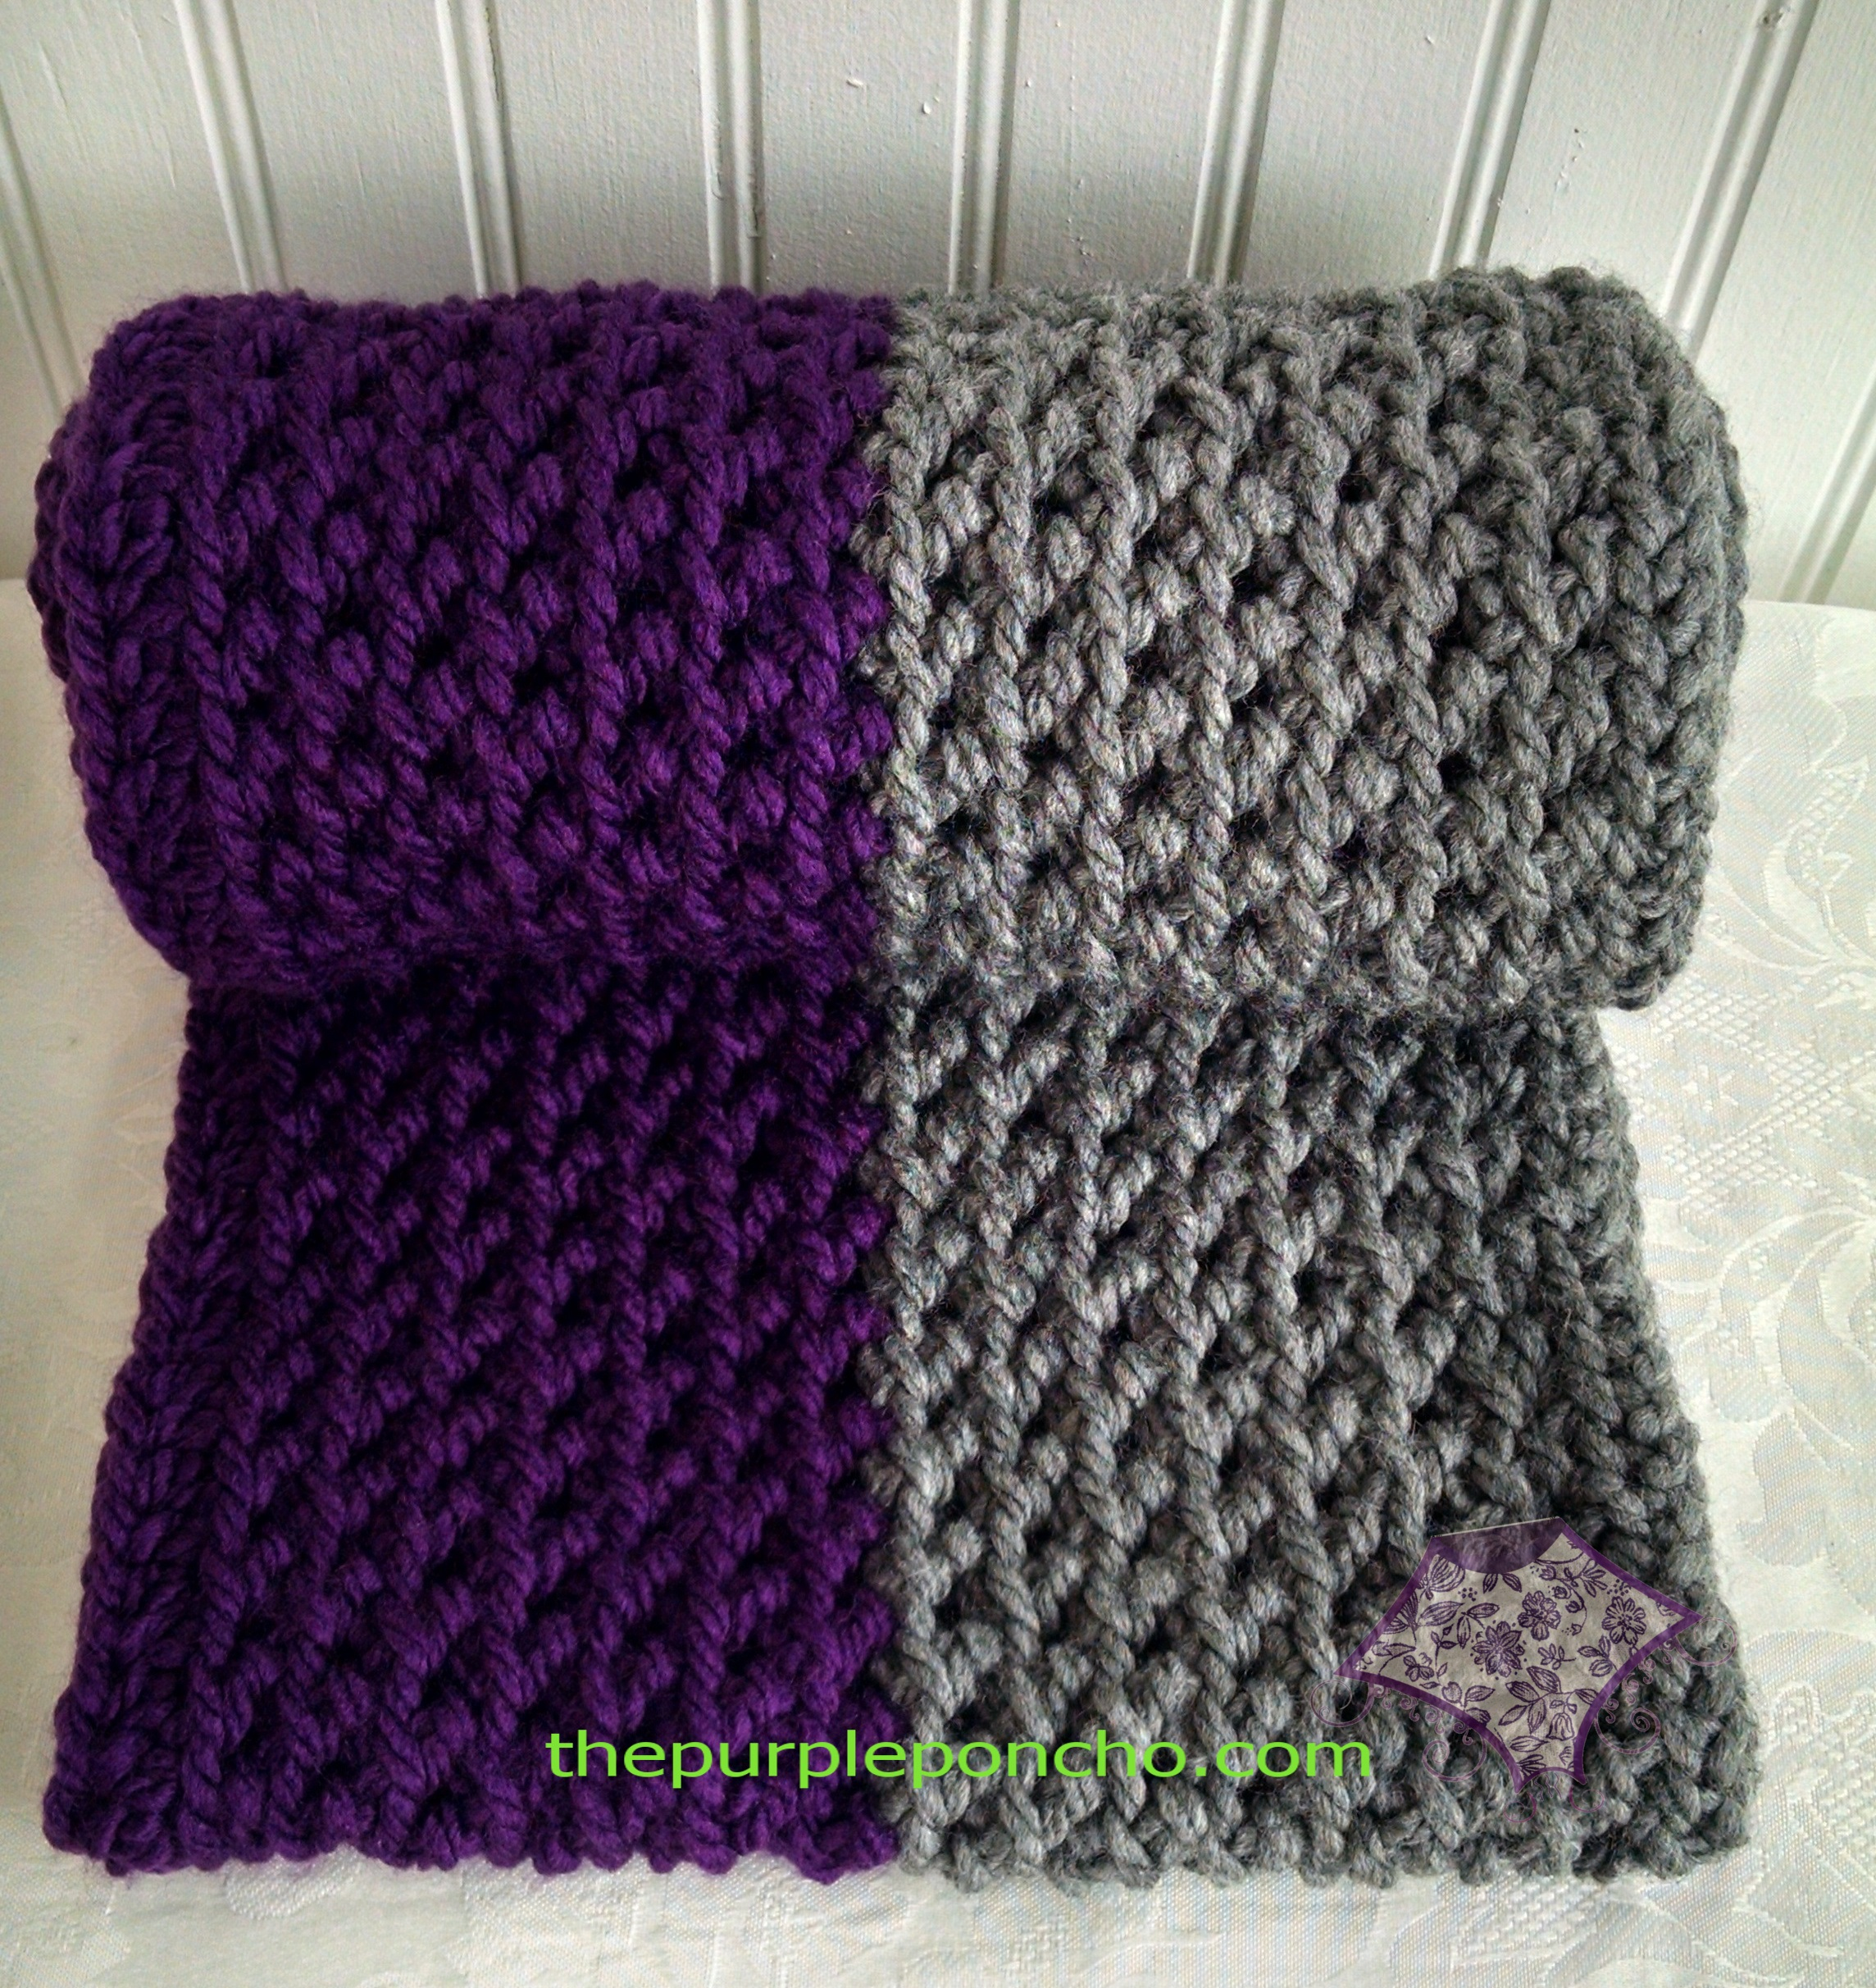 Free Patterns To And Crochet Infinity Scarf : Herringbone Infinity Scarf A Free Crochet Pattern The ...